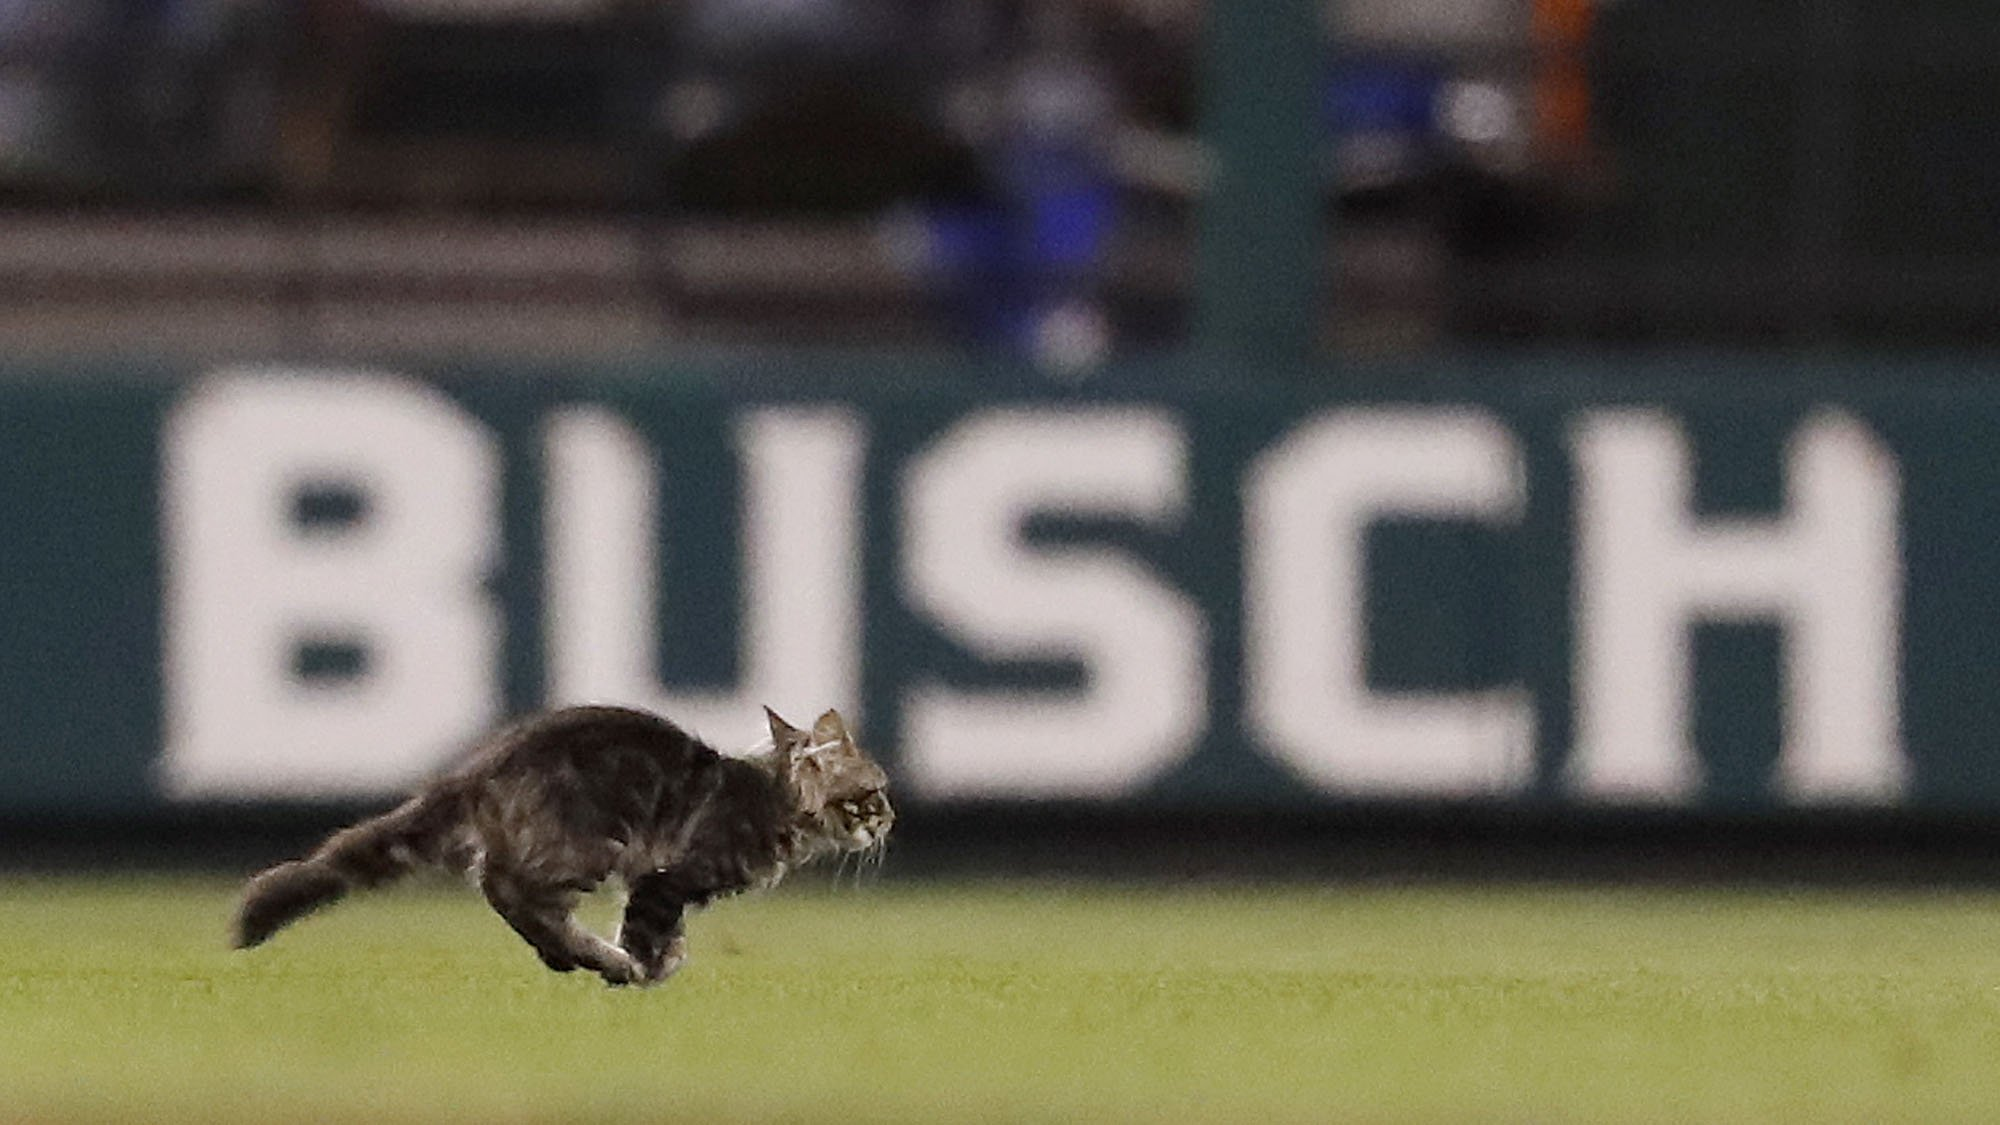 While you were away, #RallyCat earned a call-up to the @Cardinals. https://t.co/HG0WK6tLCV https://t.co/Kn8t9BTfTz